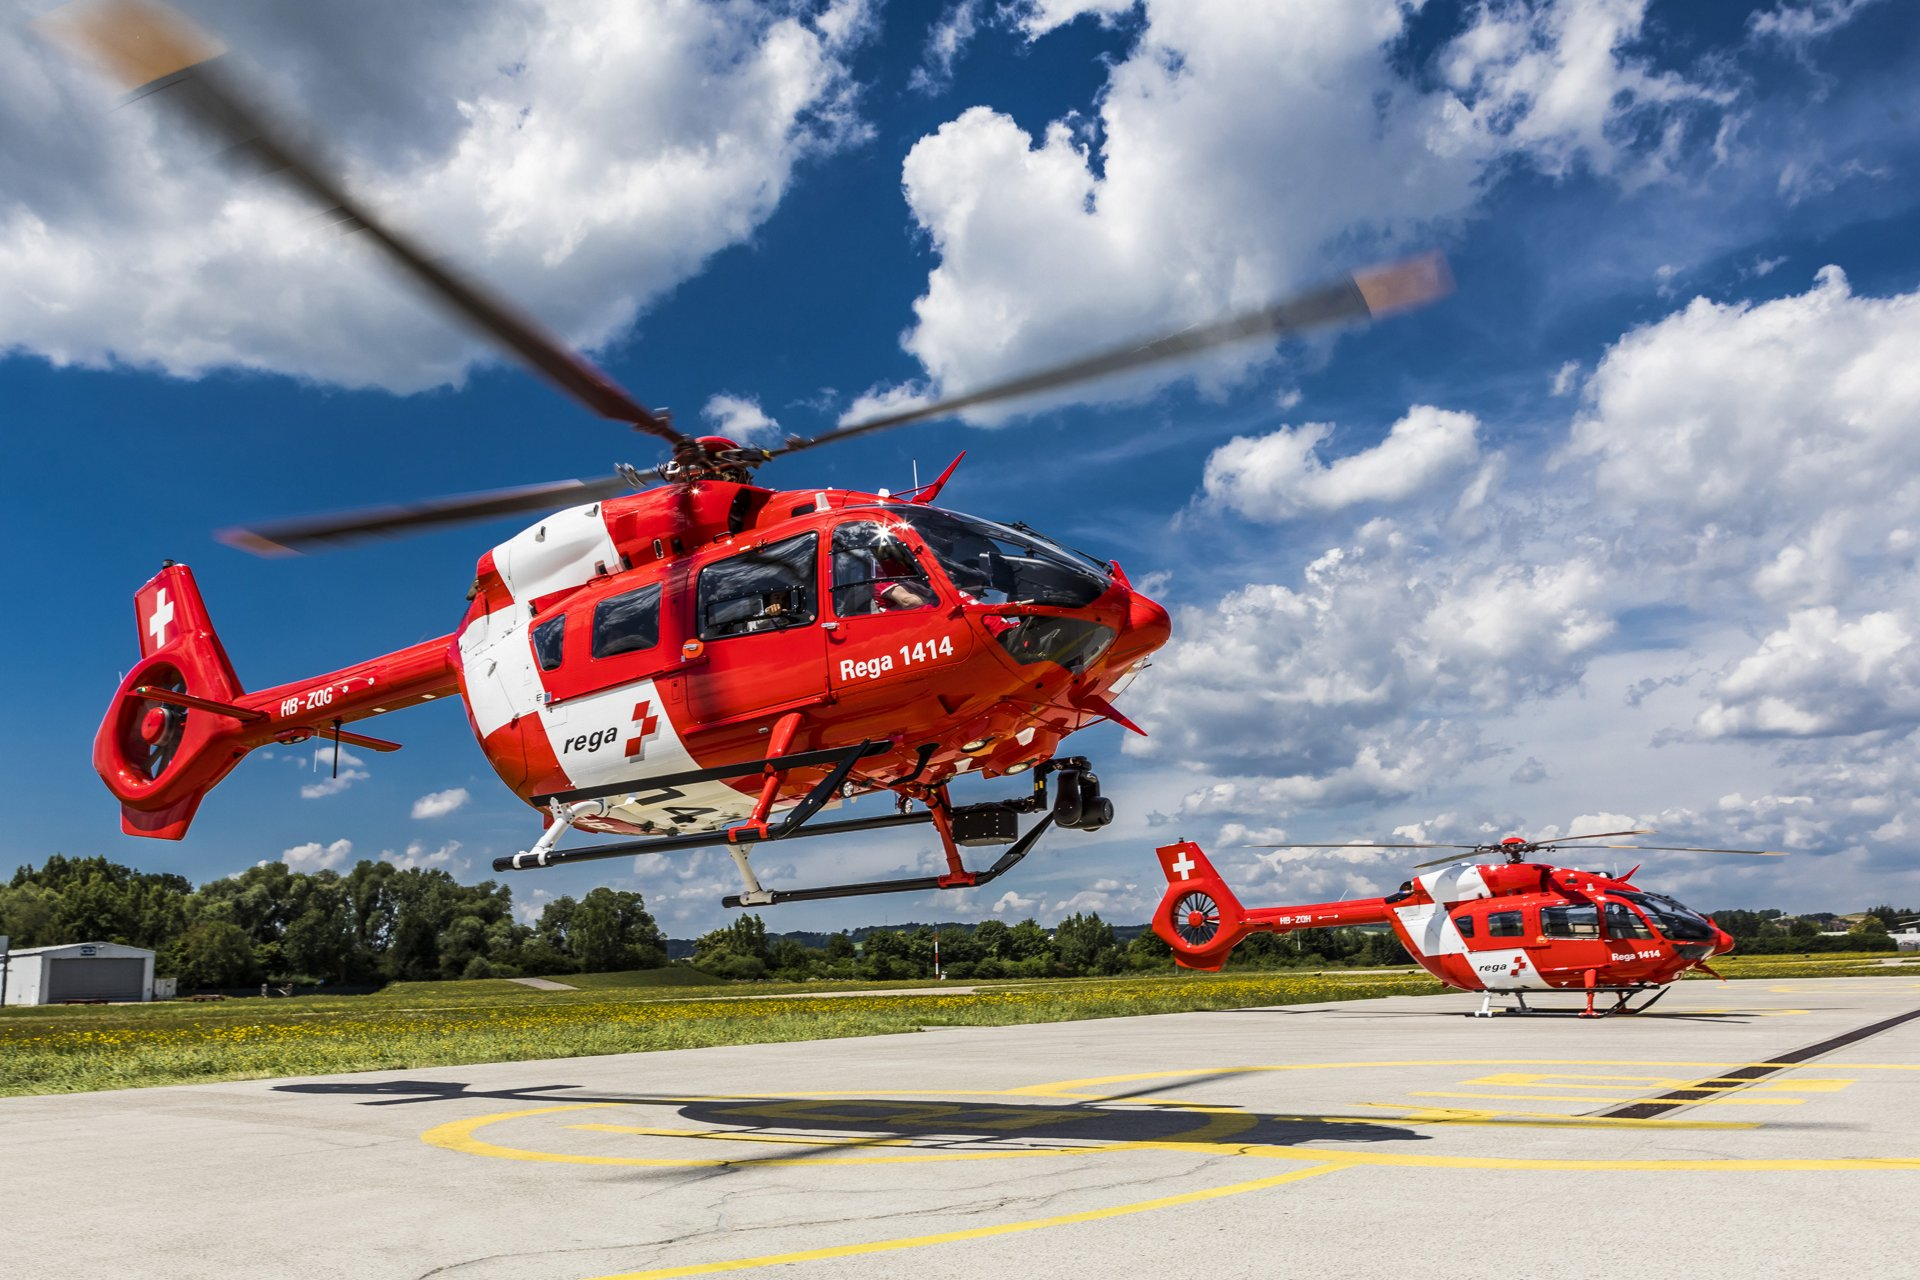 Airbus Helicopters has delivered the first two of a total of six H145 helicopters to Swiss Air-Rescue Rega. These will replace Rega's existing fleet of EC145 helicopters, which will be phased out by mid-2019. The first H145 helicopter is expected to be deployed at the Bern base in October.